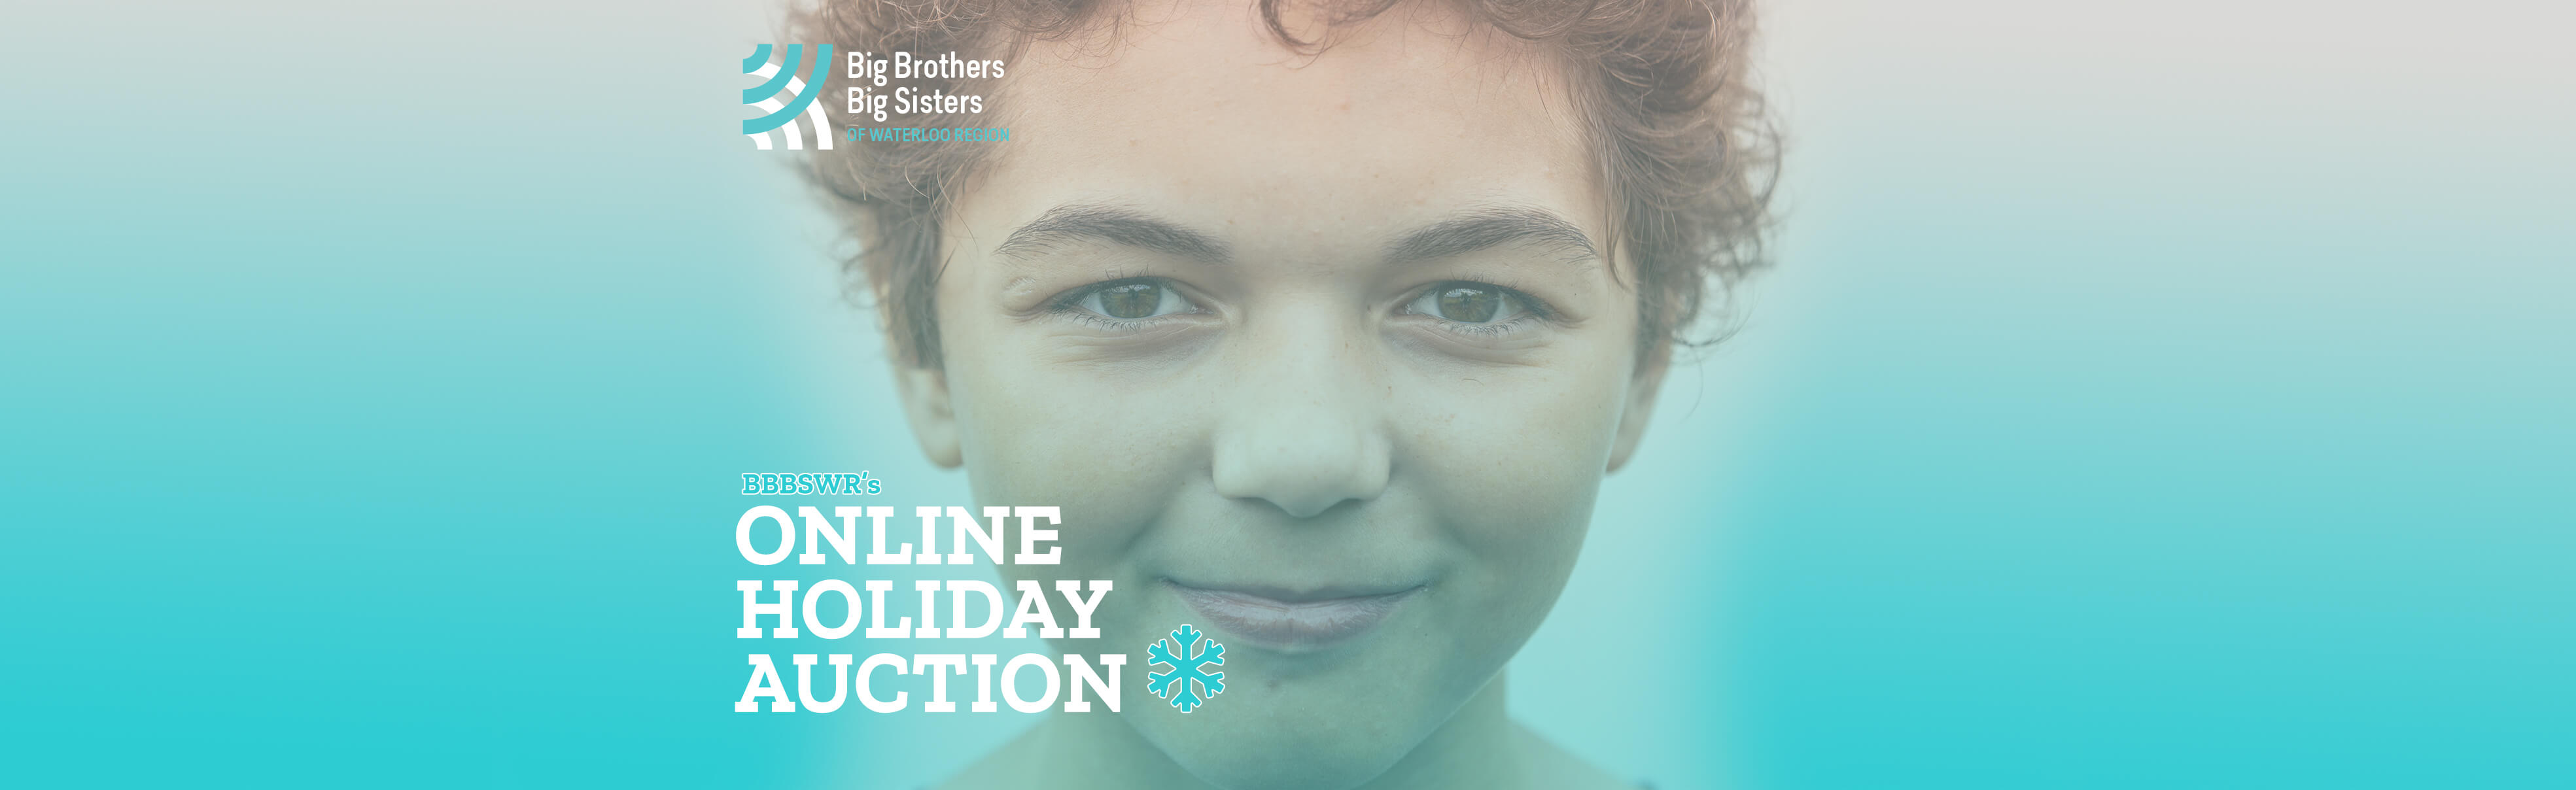 Online Holiday Auction Header